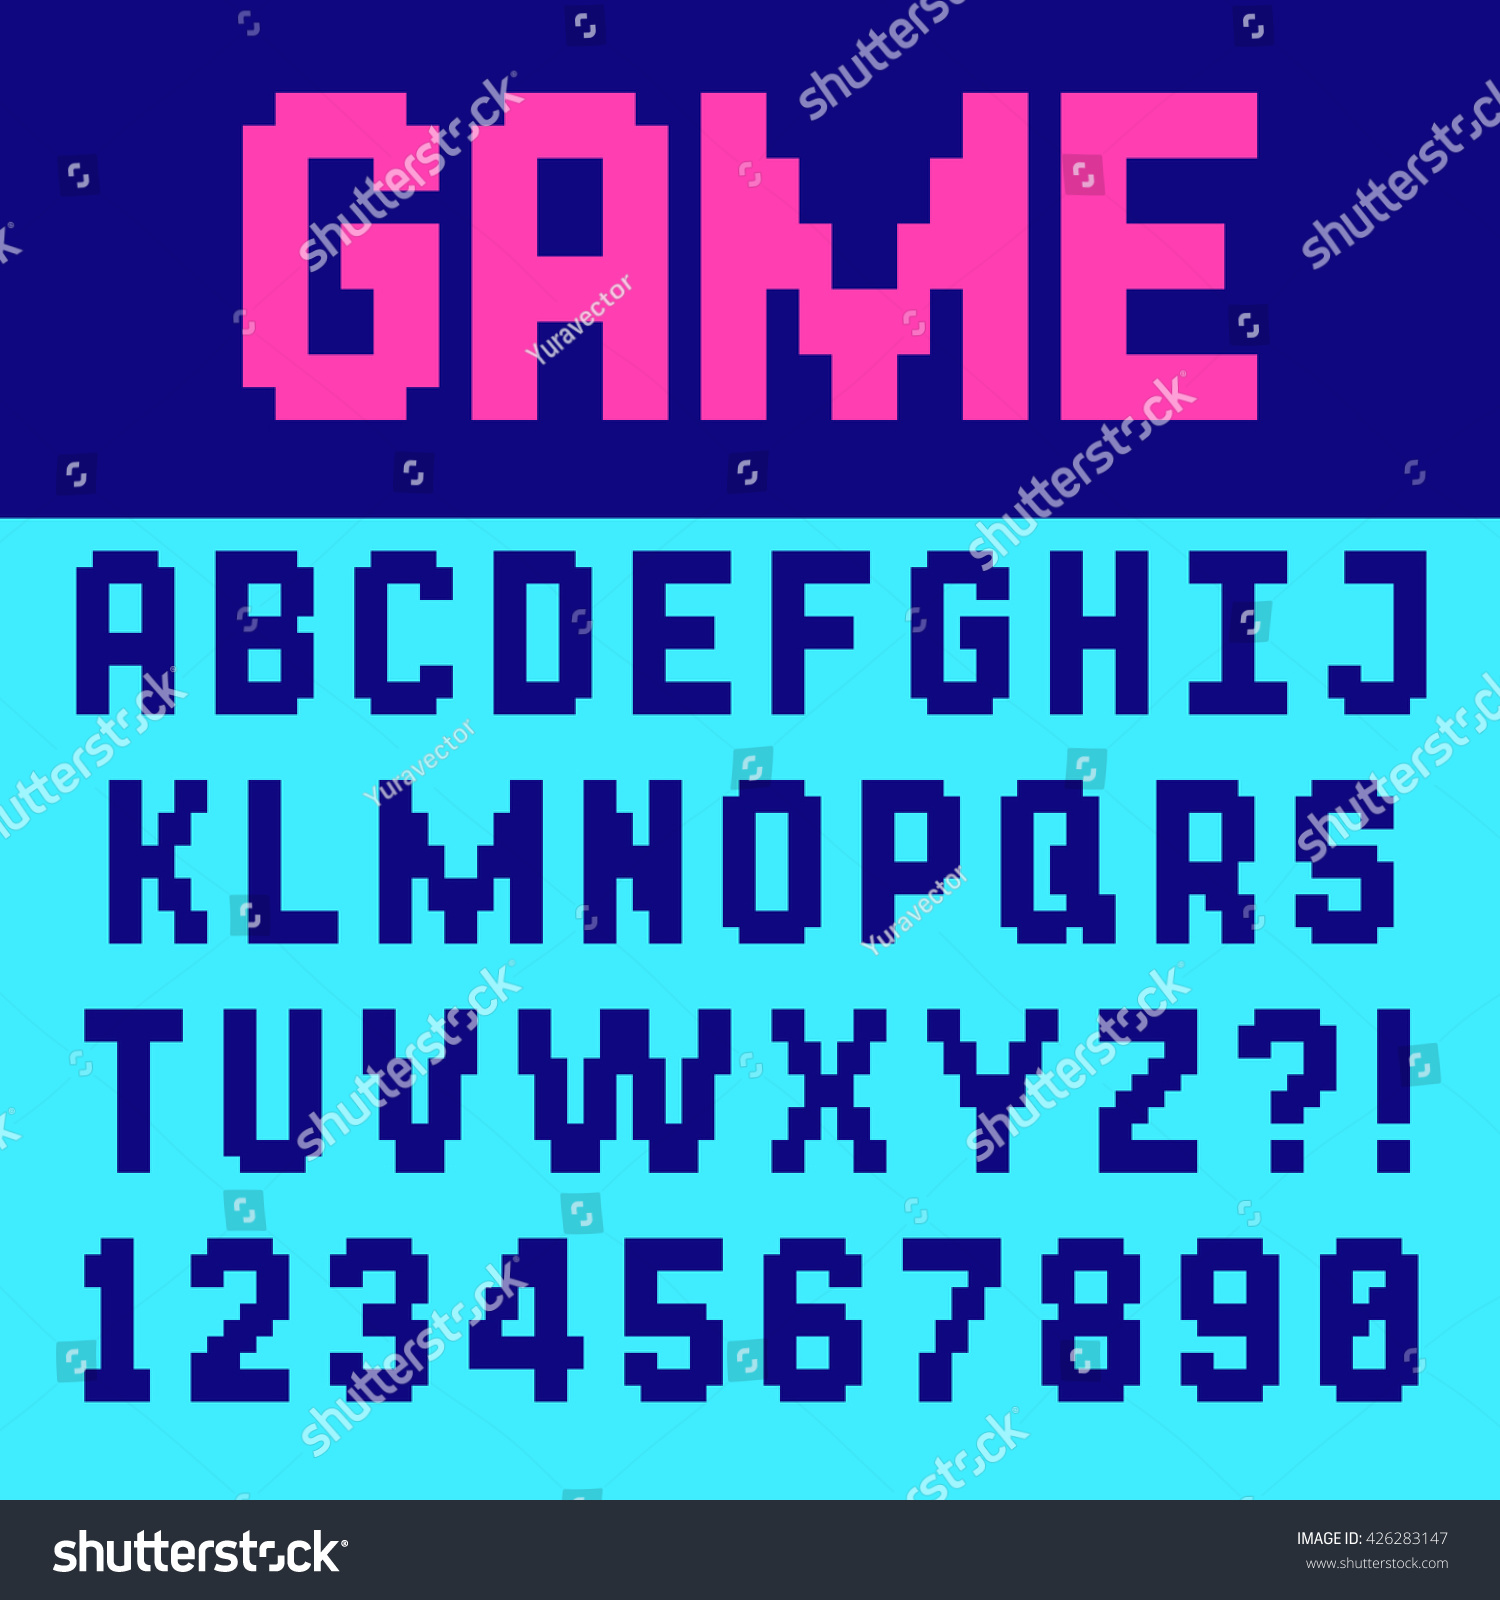 Pixel Retro Font Video Computer Game Stock Vector